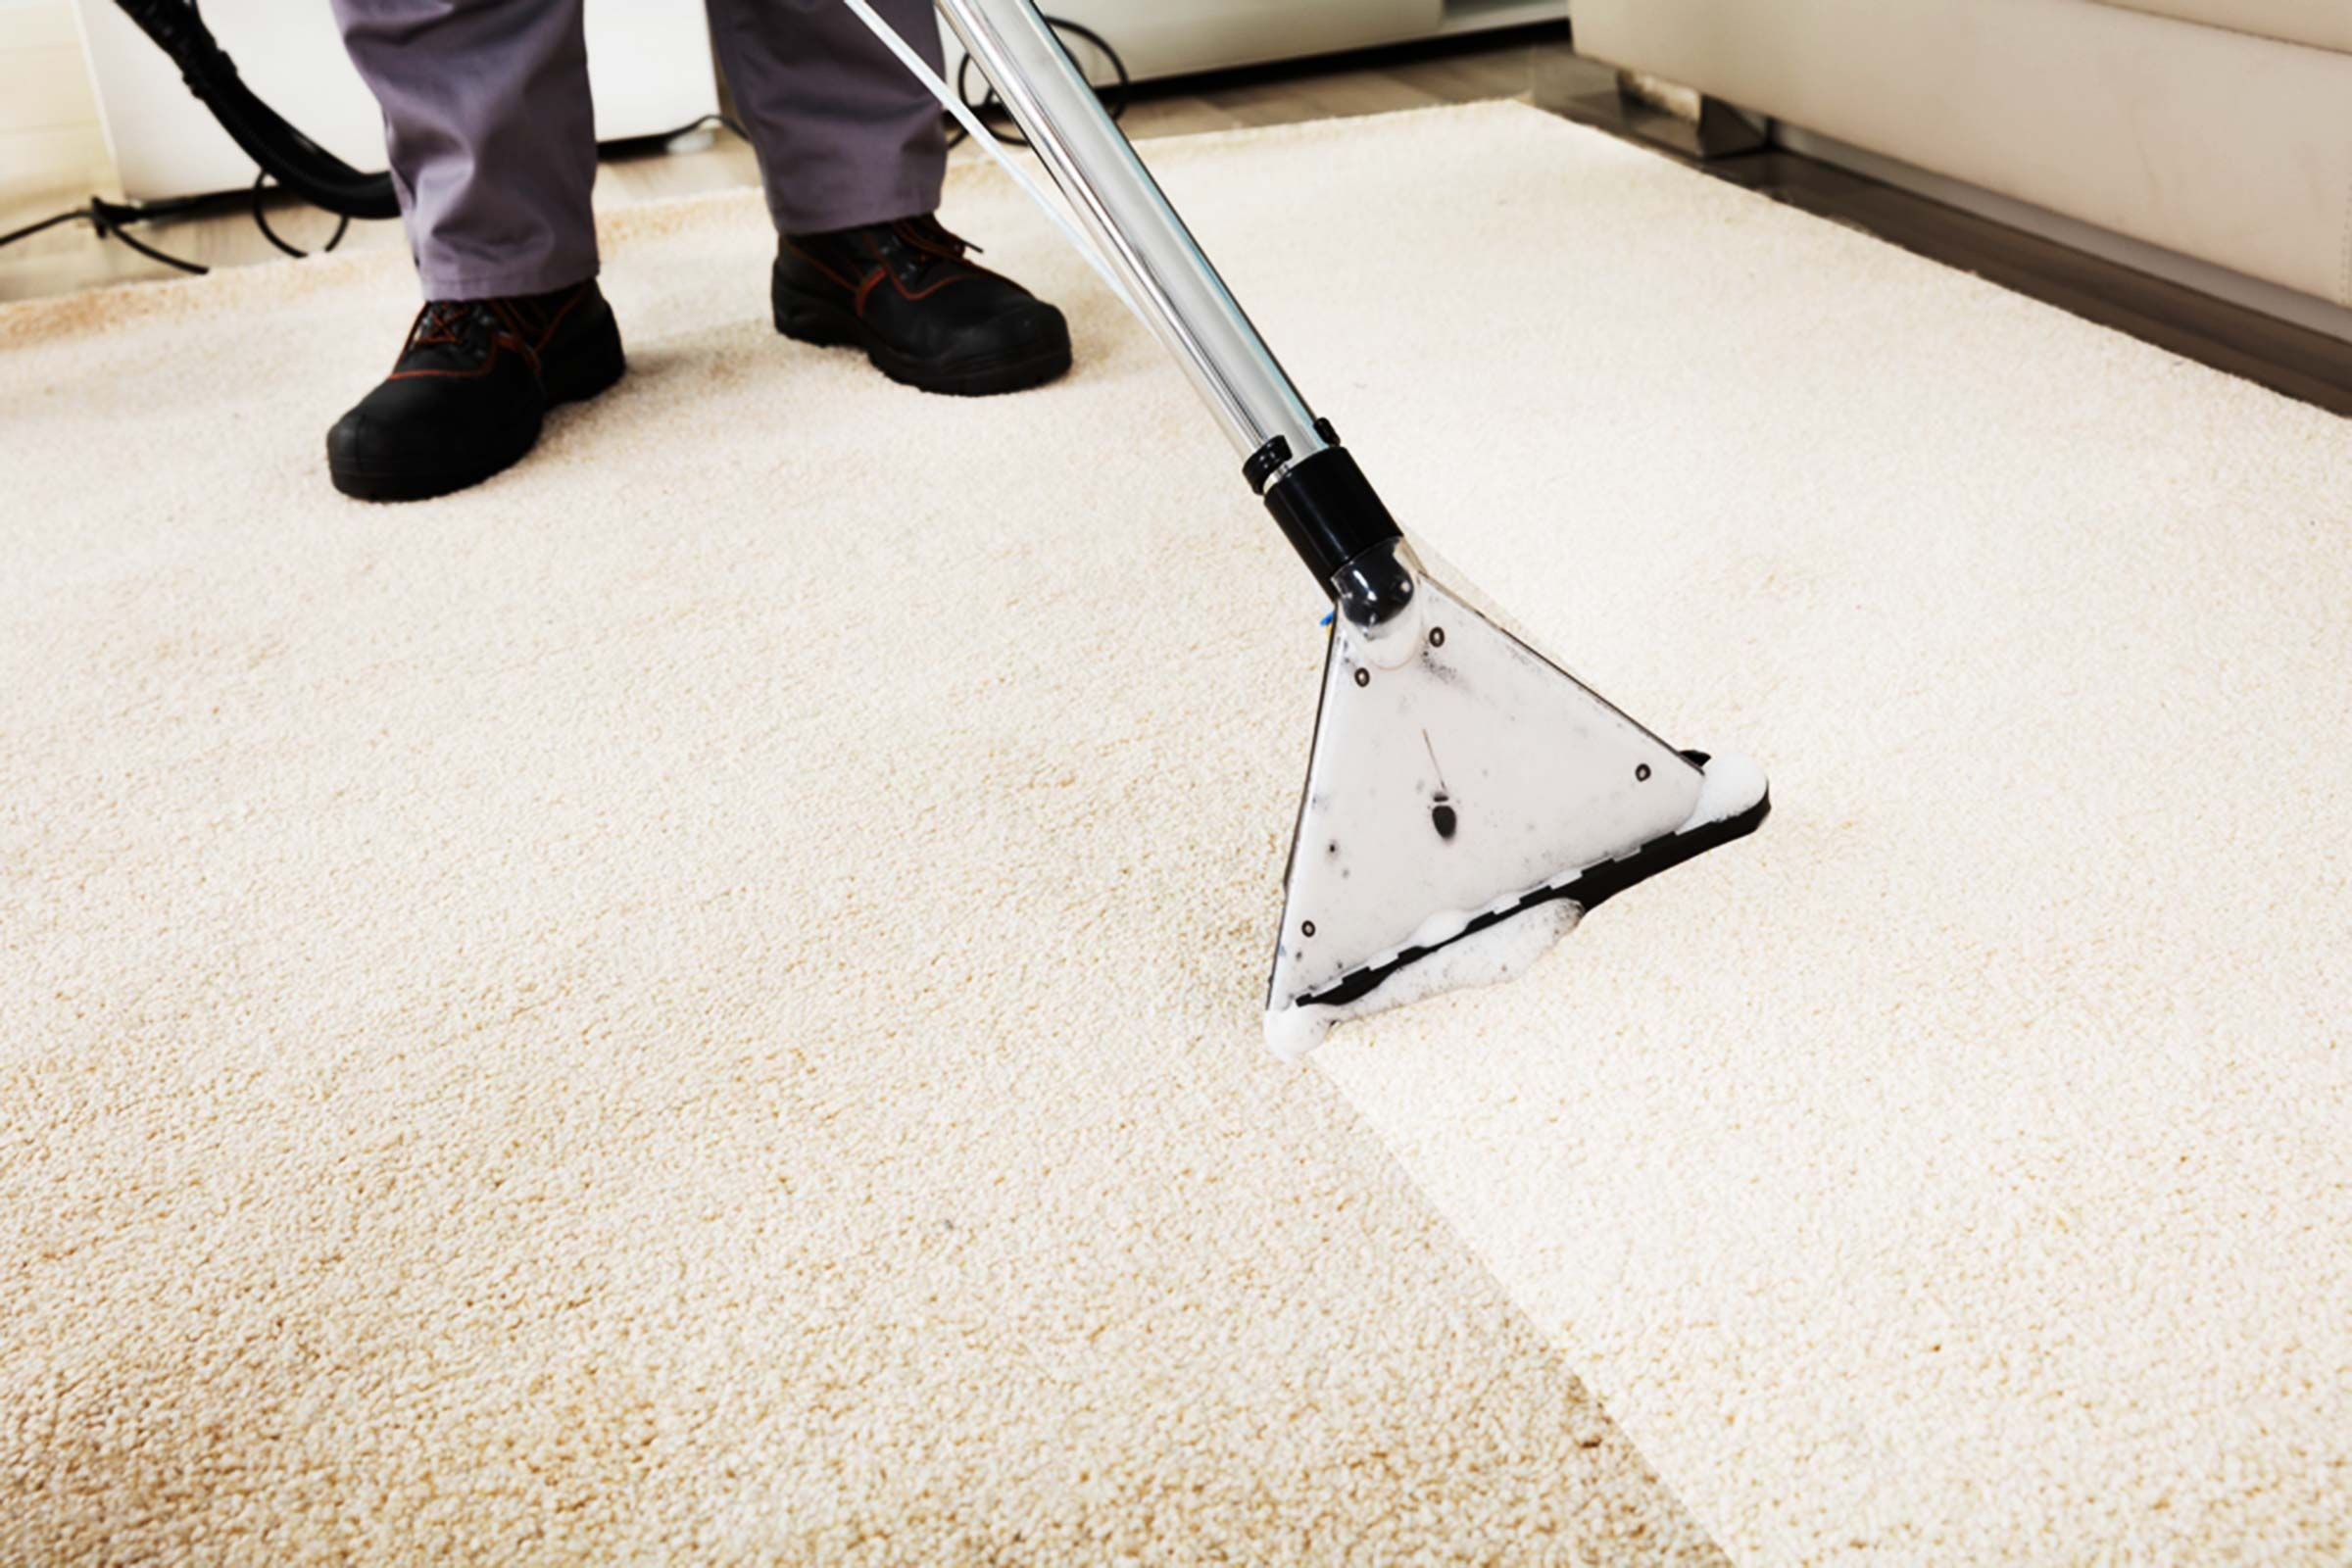 how to get red wine out of carpet once dry